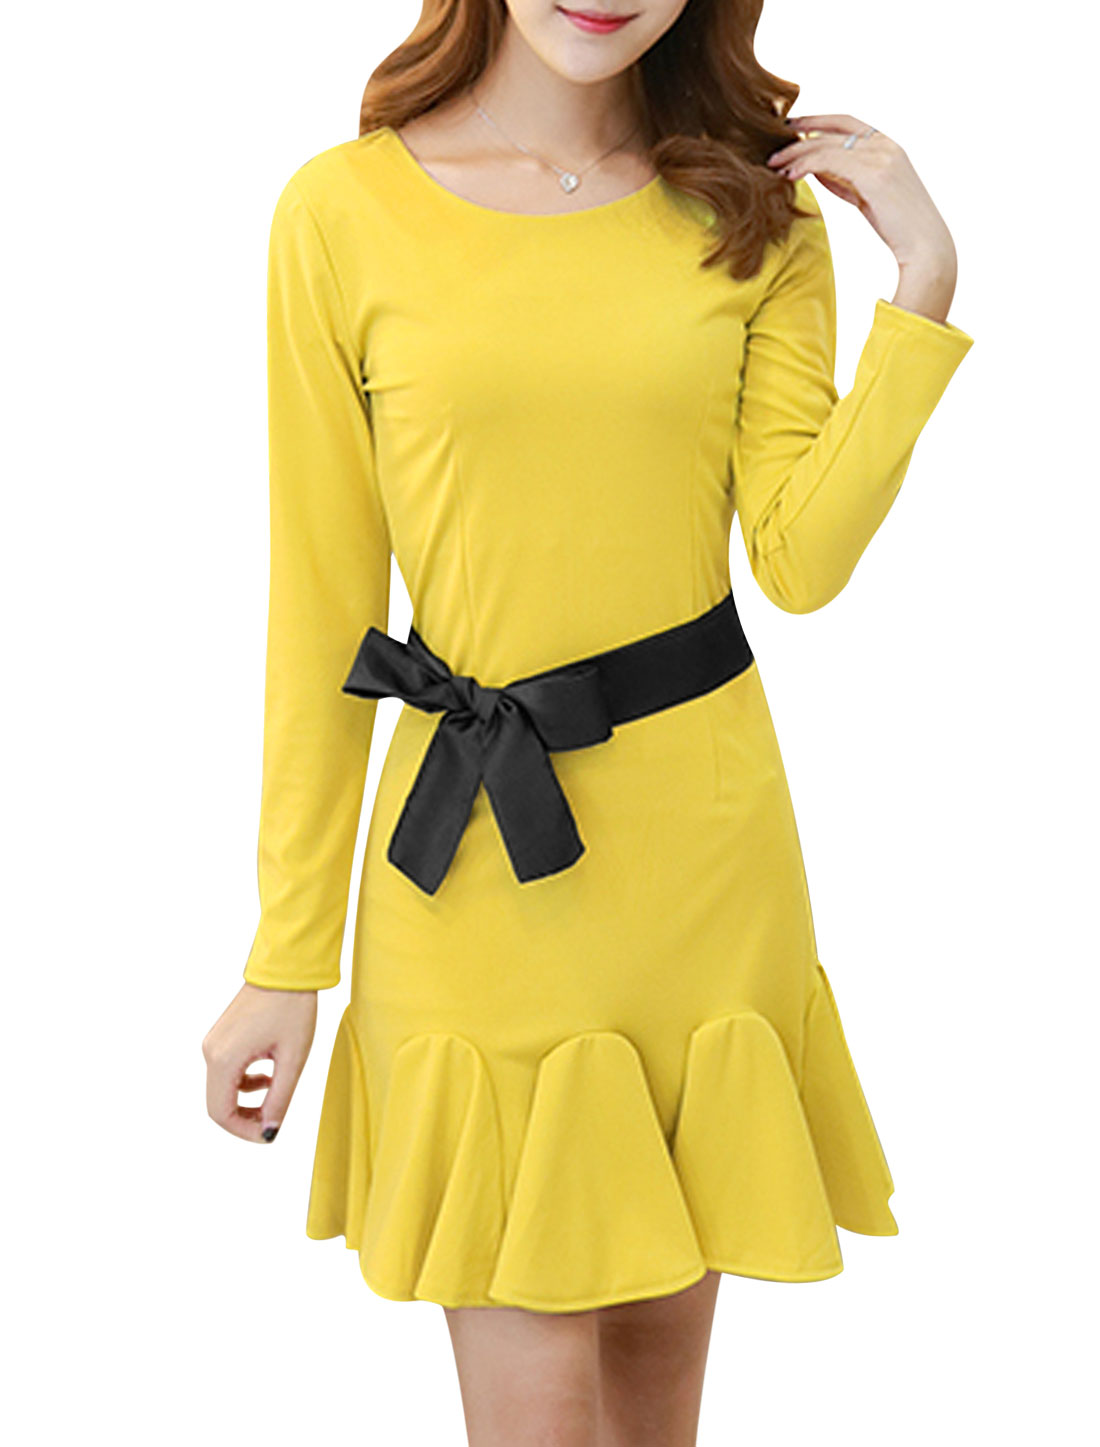 Women Flouncing Hem Sheath Dress w Belt Yellow S